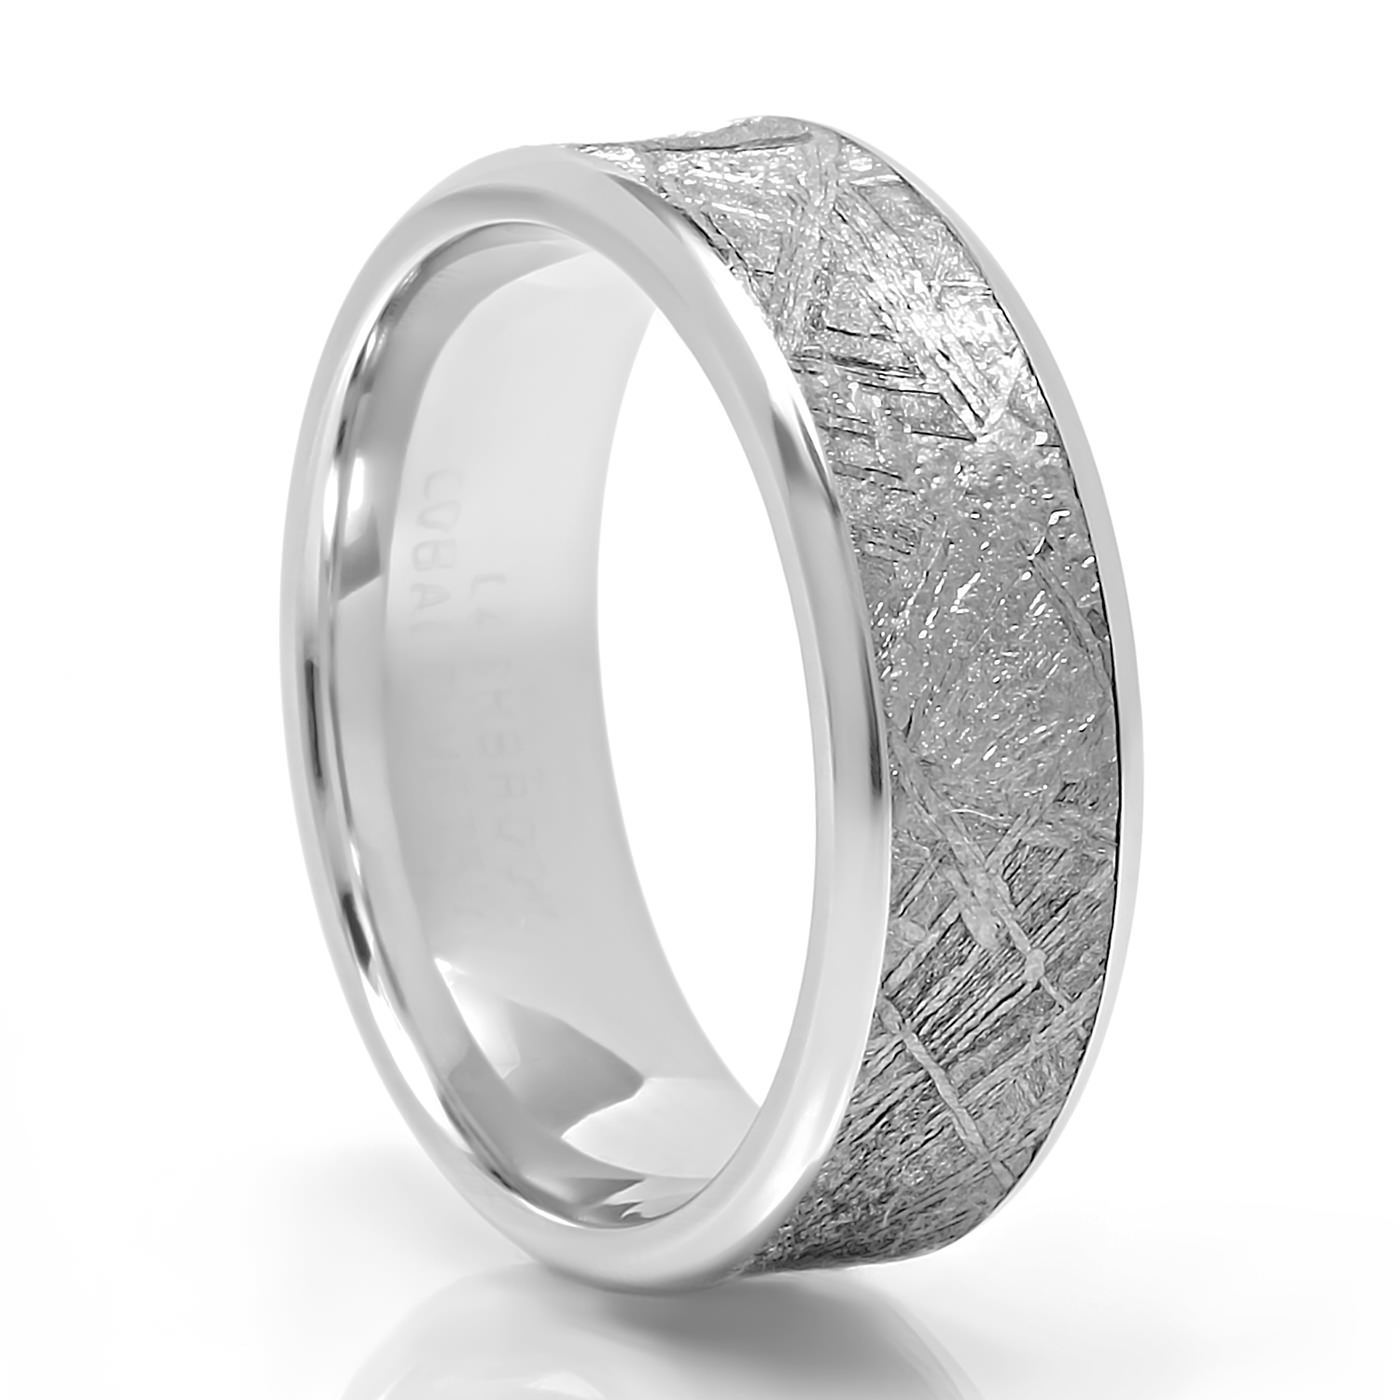 lashbrook fusion cobalt gibeon meteorite wedding band 7mm - Cobalt Wedding Rings